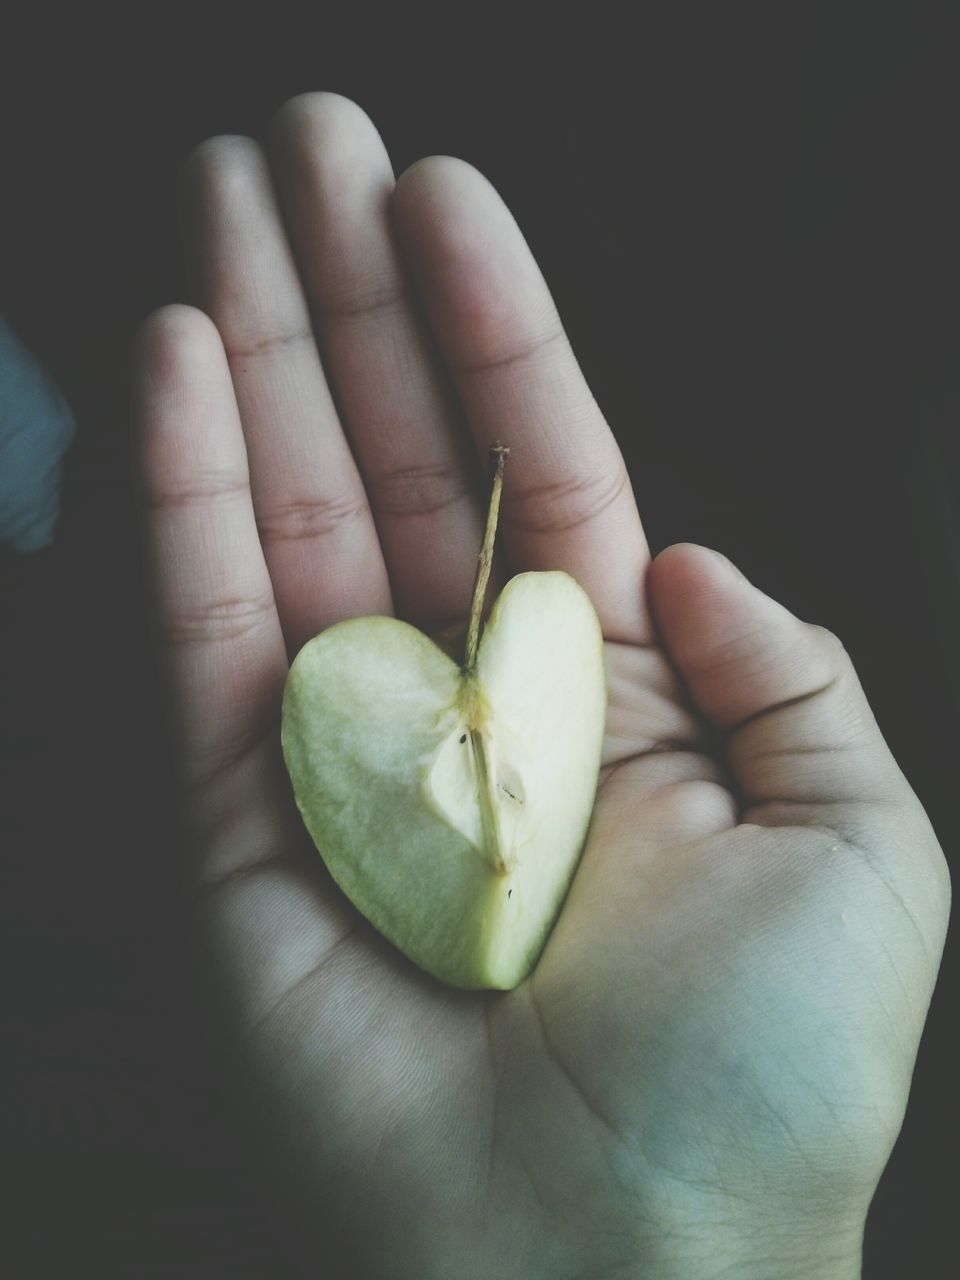 Person Holding Carved Apple